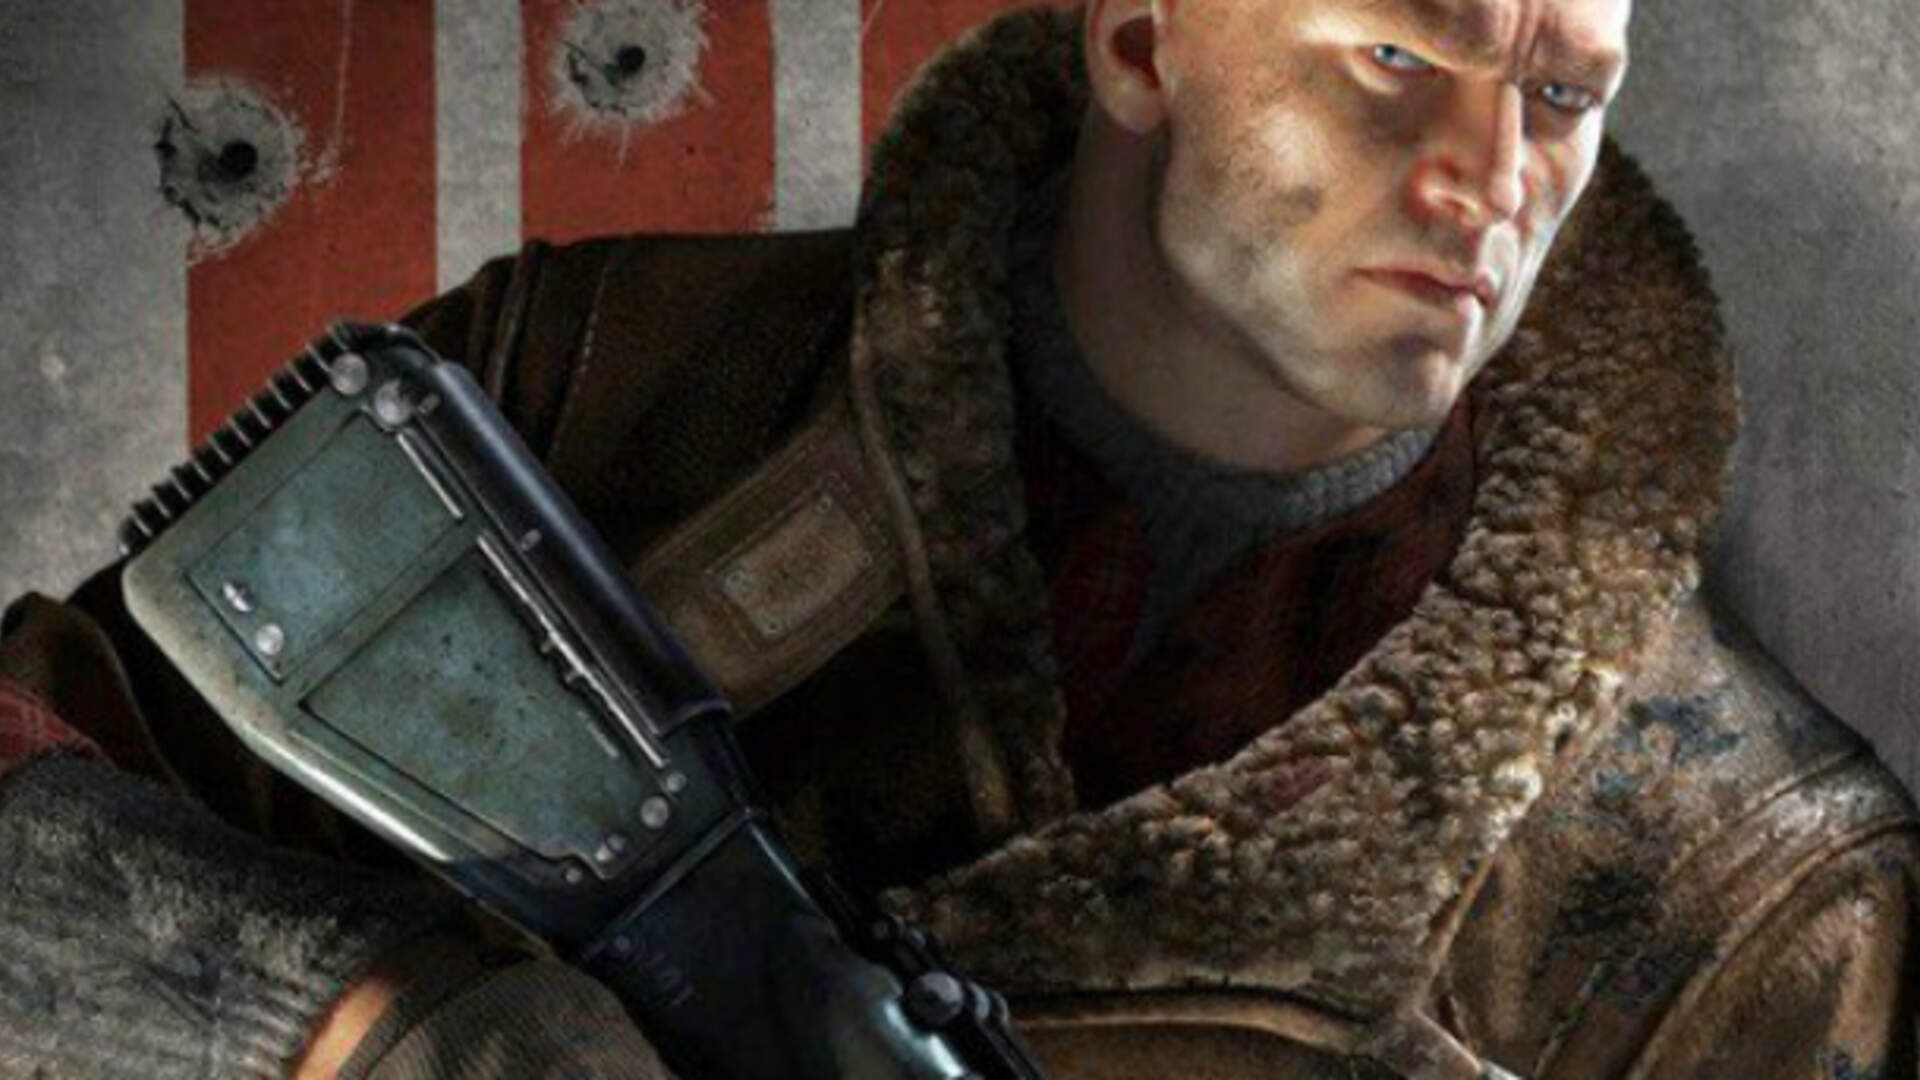 Here's What Wolfenstein 2 Looks Like on Switch